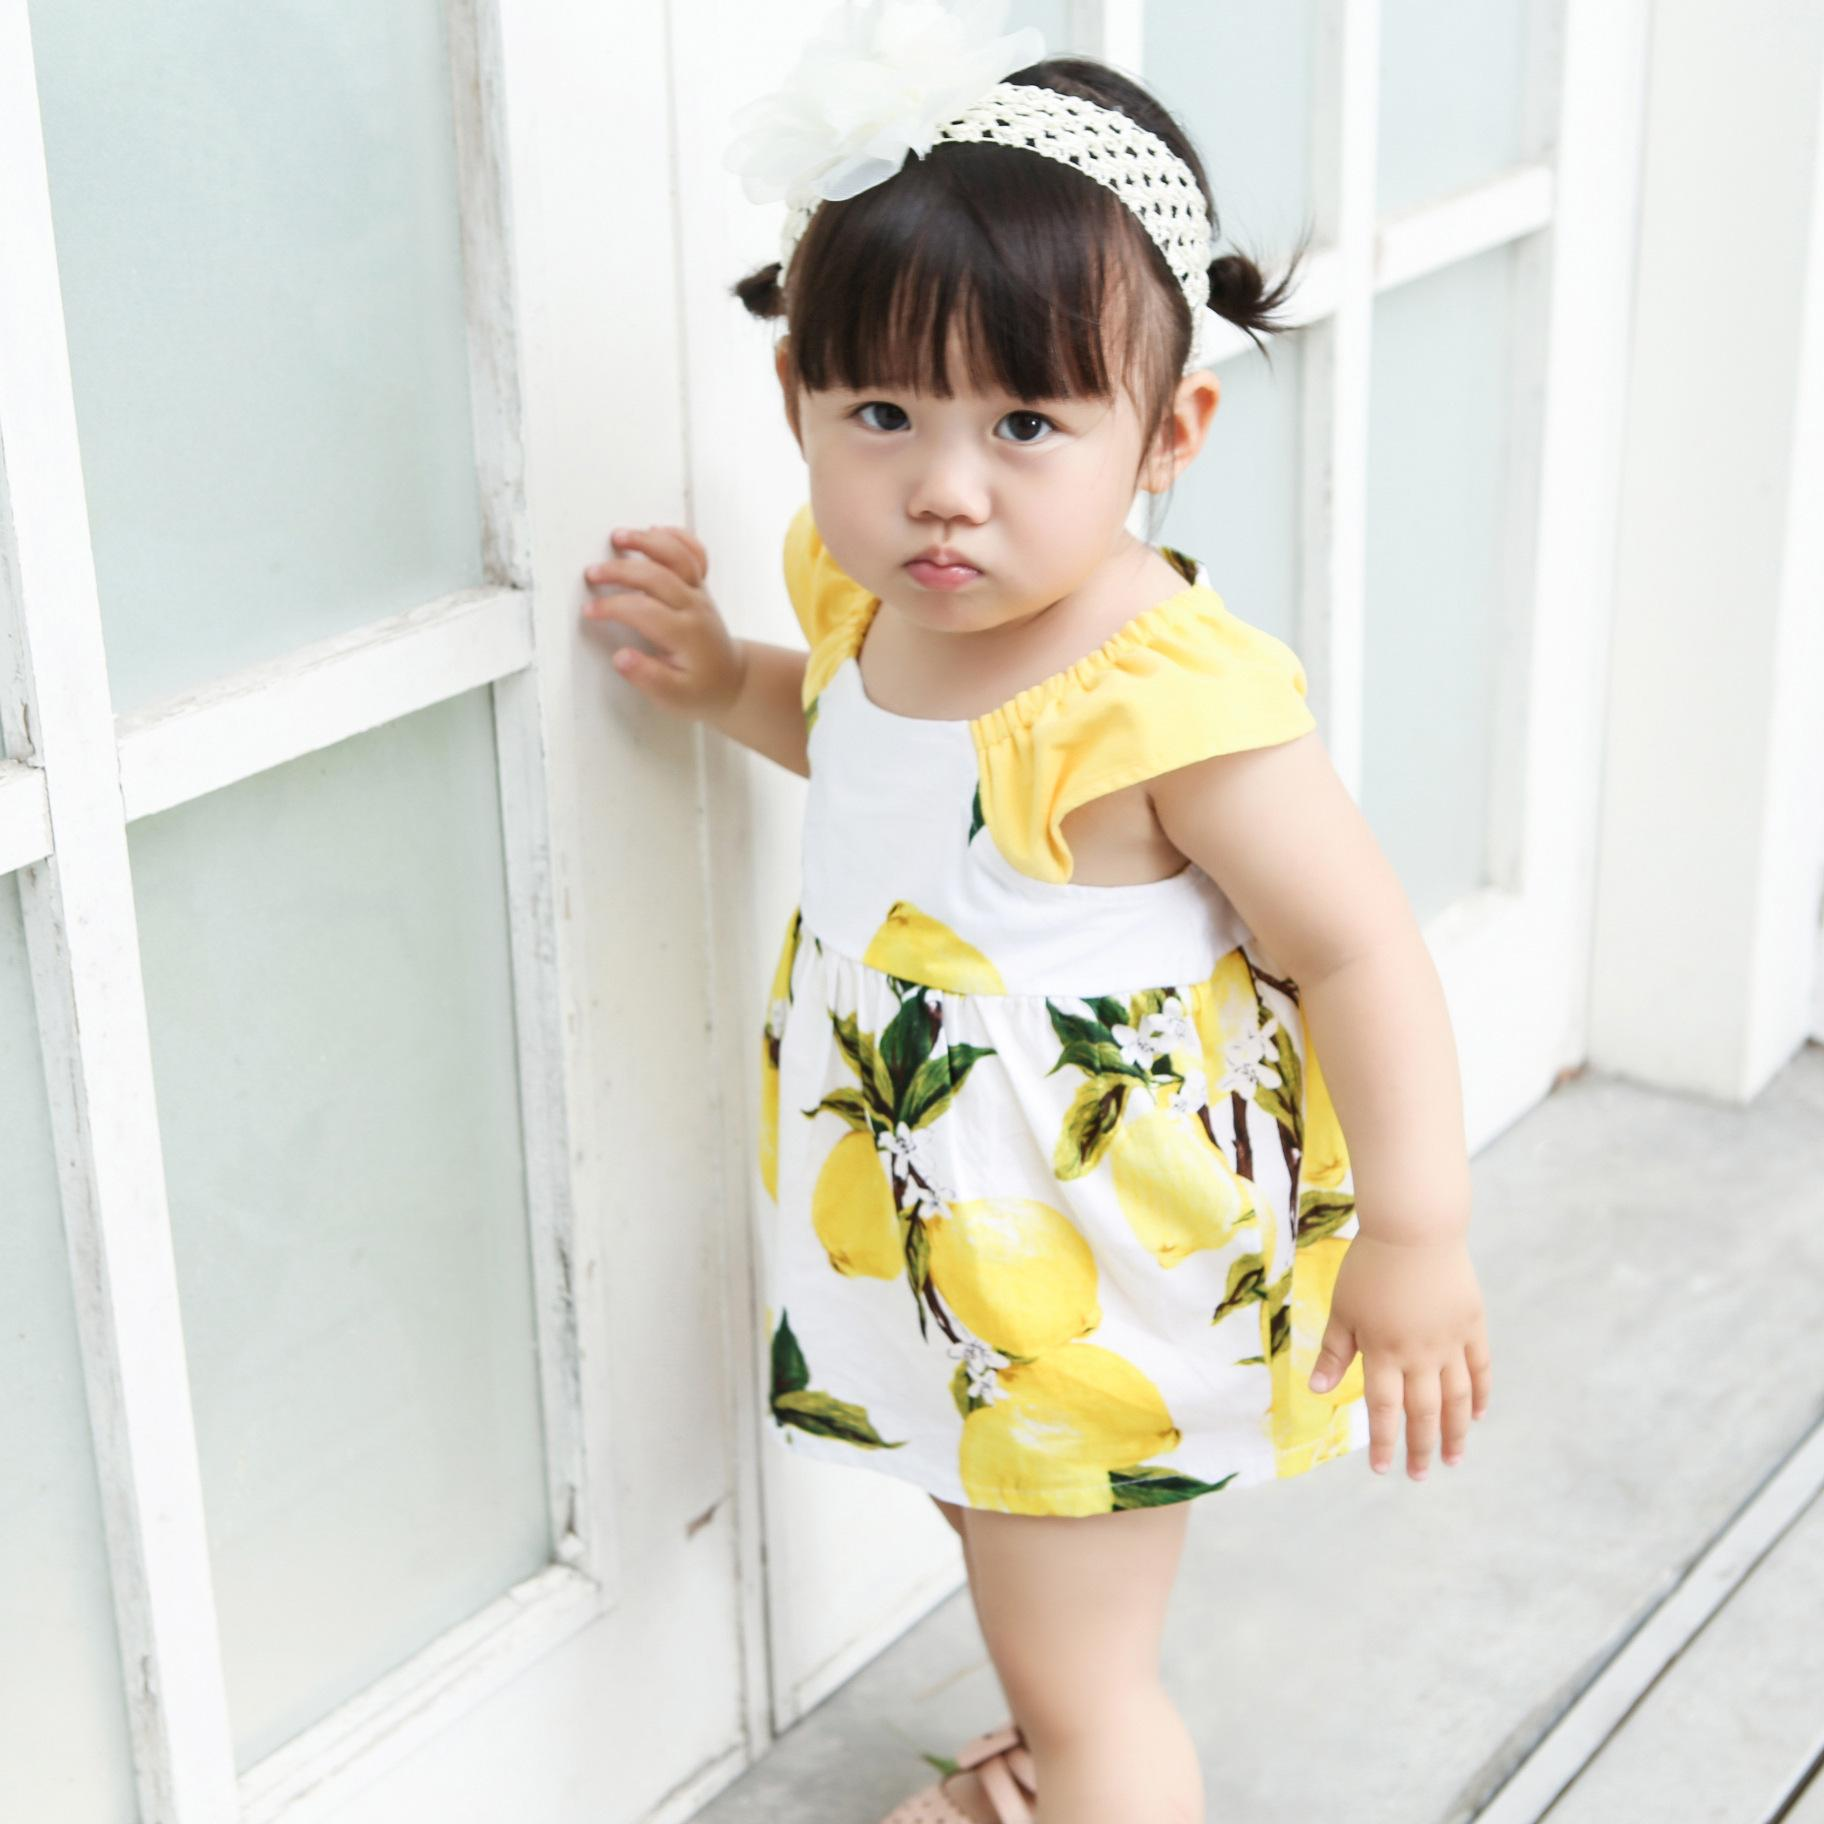 9b1d96498a2 Baby Girl Infant Clothing Sets Suit Princess Tutu Romper Dress Jumpsuit  with Hat Bebe Party Birthday Costumes Vestido Online with  45.43 Piece on  ...